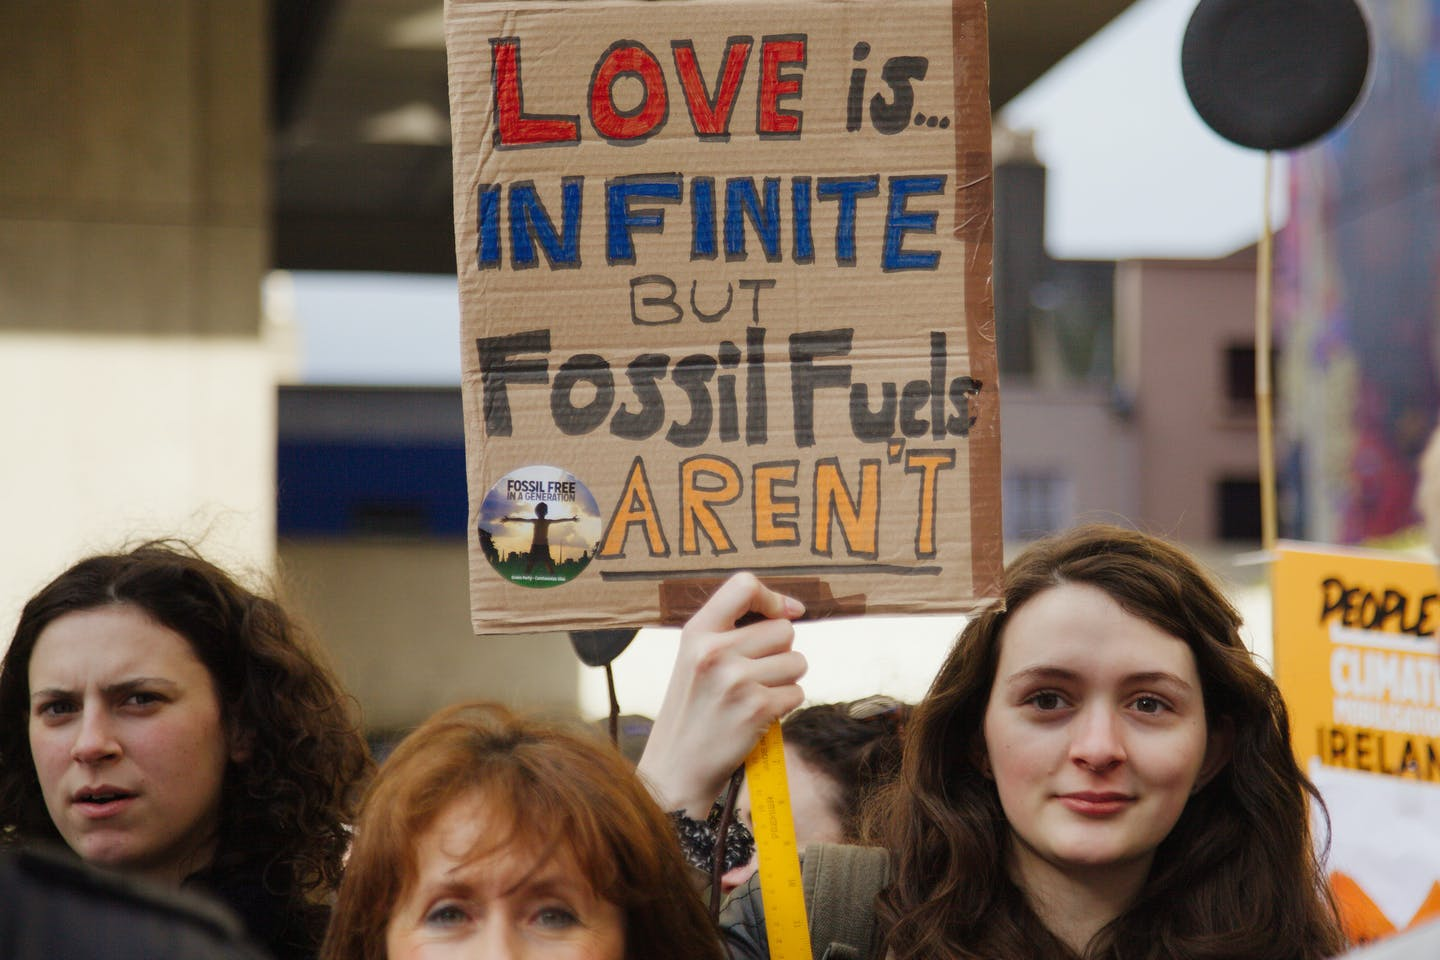 vday fossil fuel protest